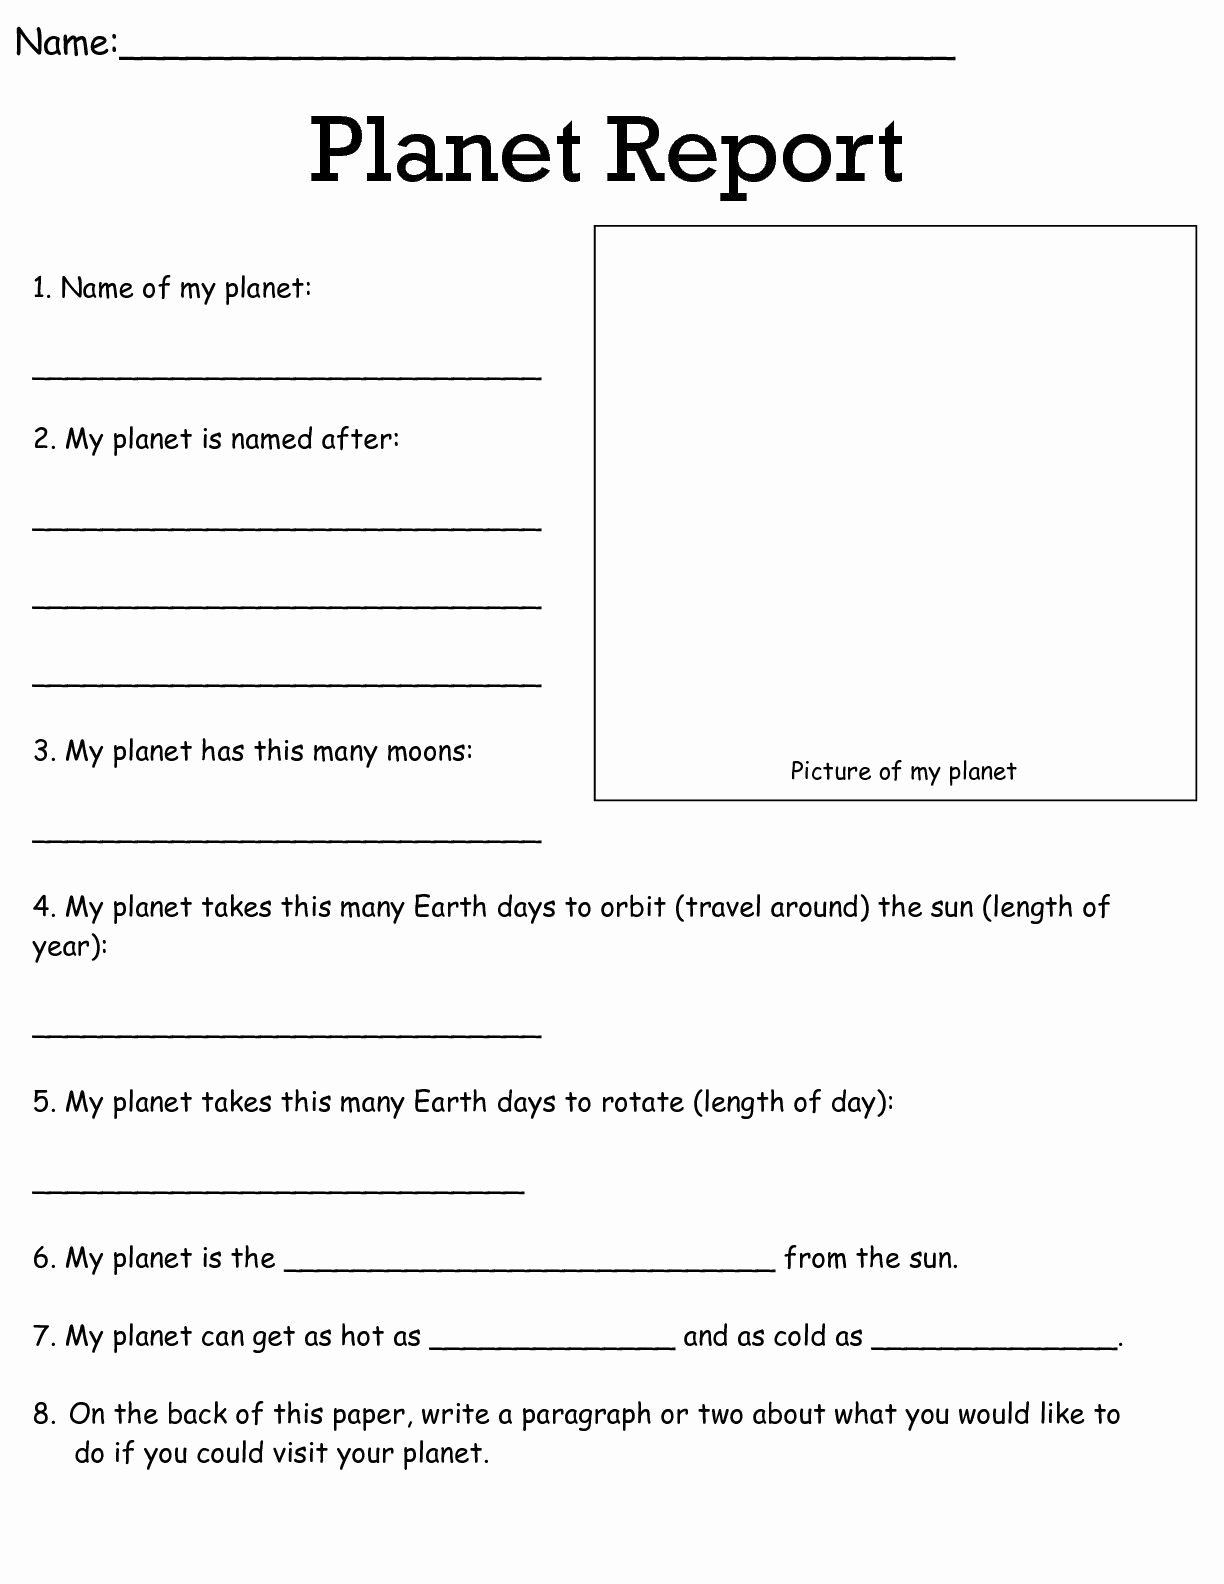 Conservation Of Energy Worksheet Answers Awesome Physical Science Worksheet Conservation Energy 2 Answer